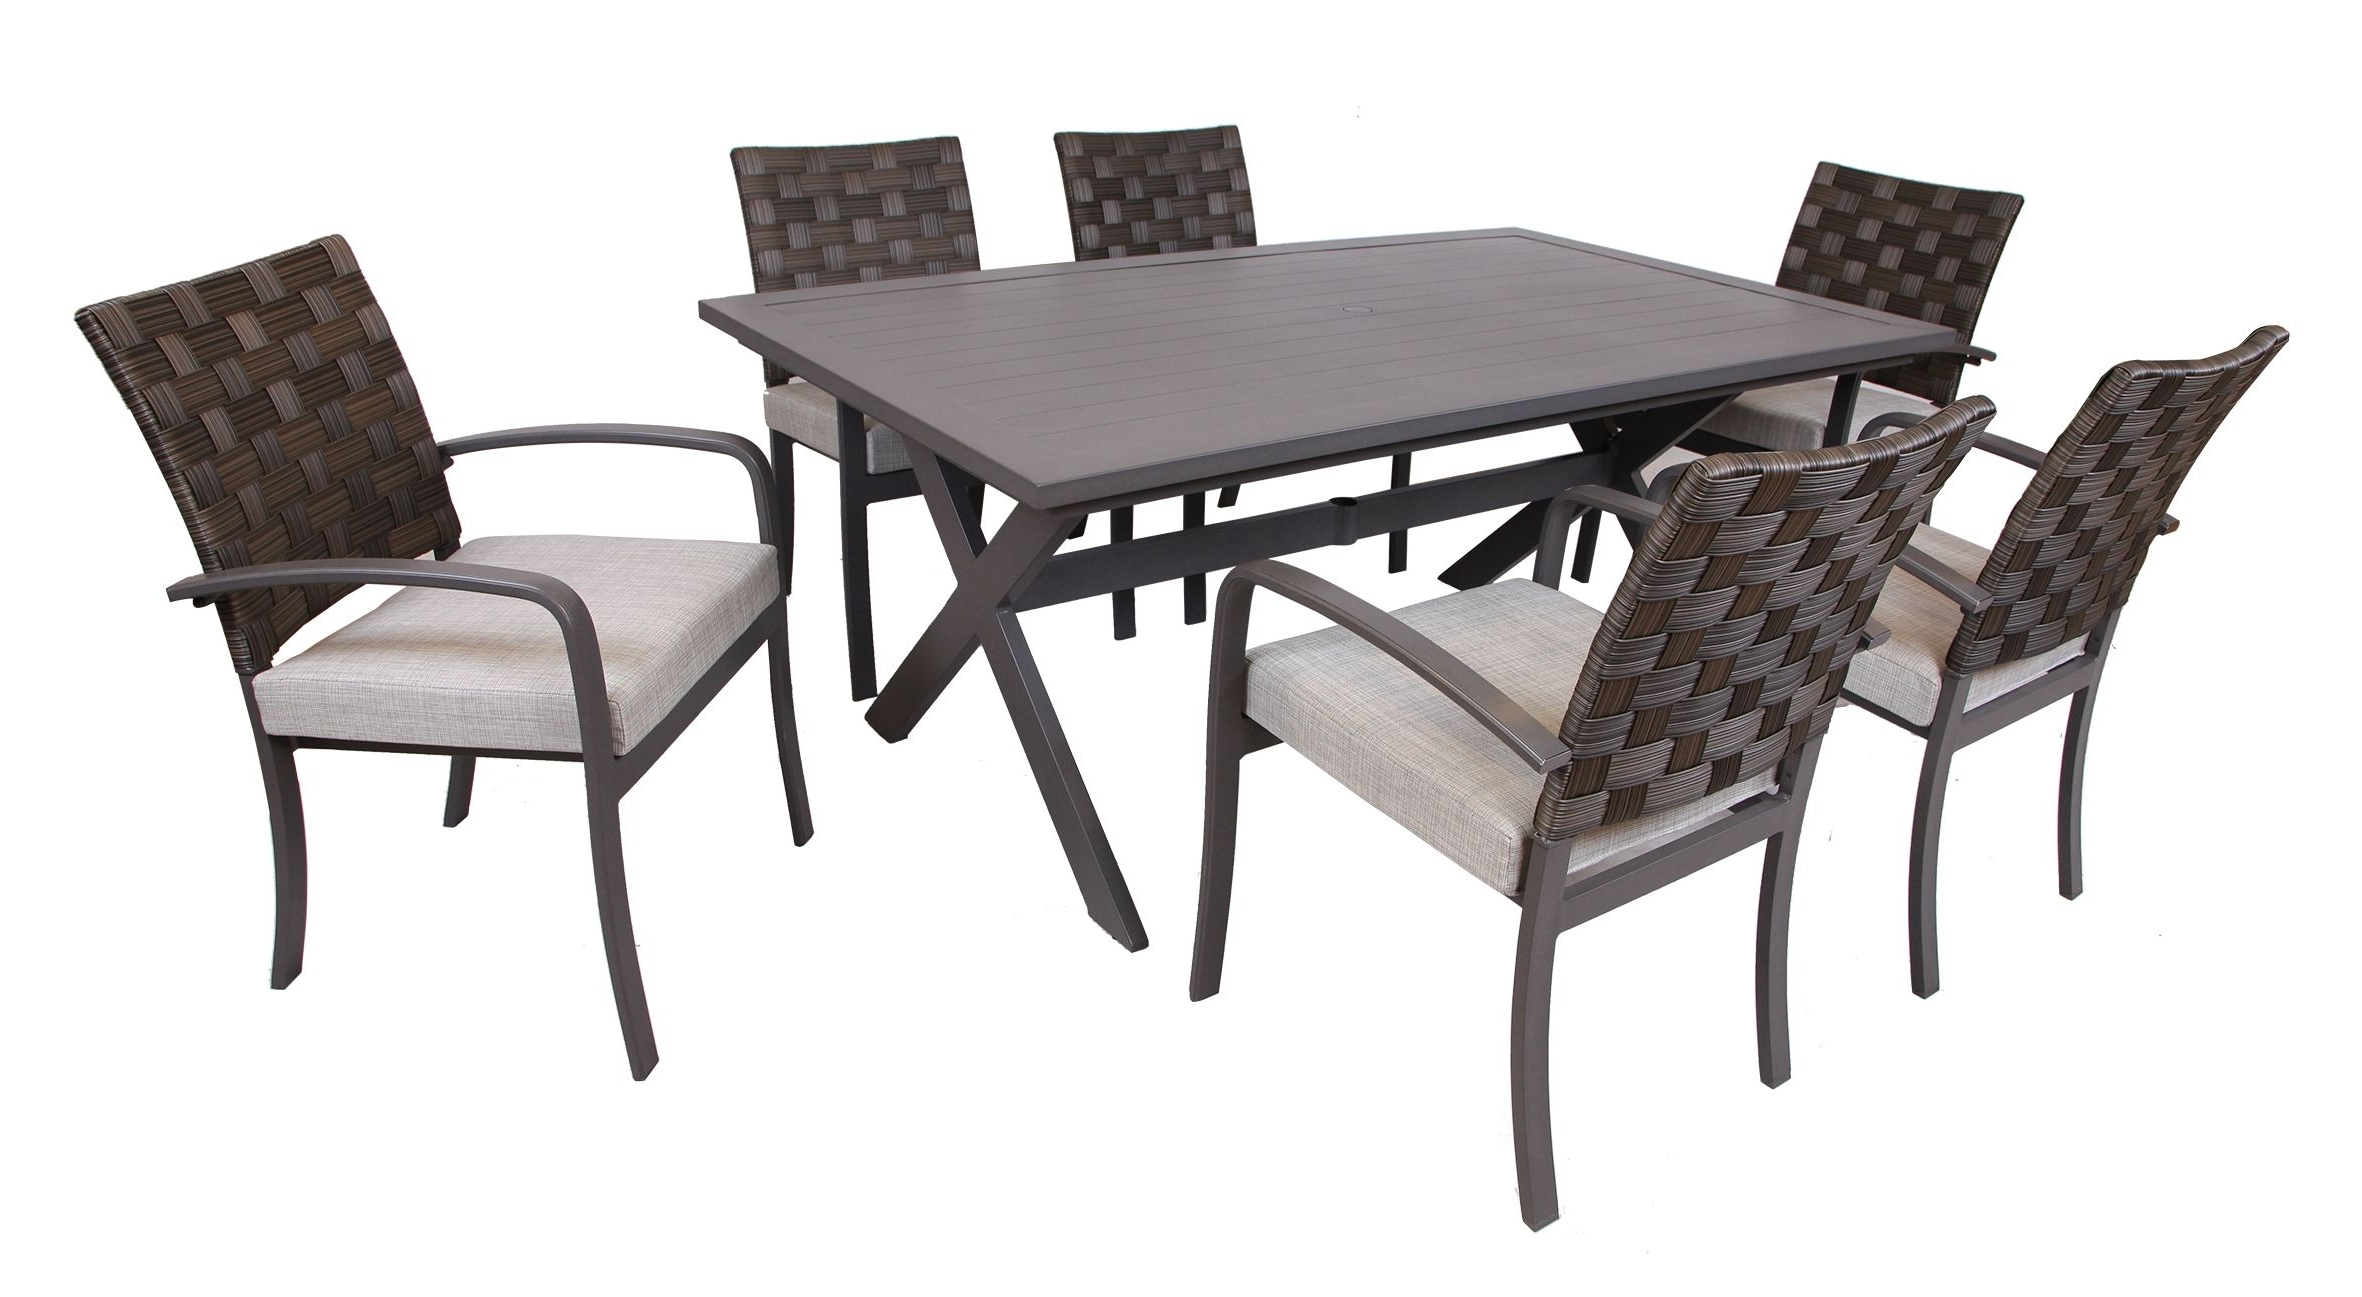 Most Recent Laurent 7 Piece Rectangle Dining Sets With Wood And Host Chairs Inside 3I Northtown 7 Pc. Dining Set – Bj's Wholesale Club (Gallery 6 of 25)